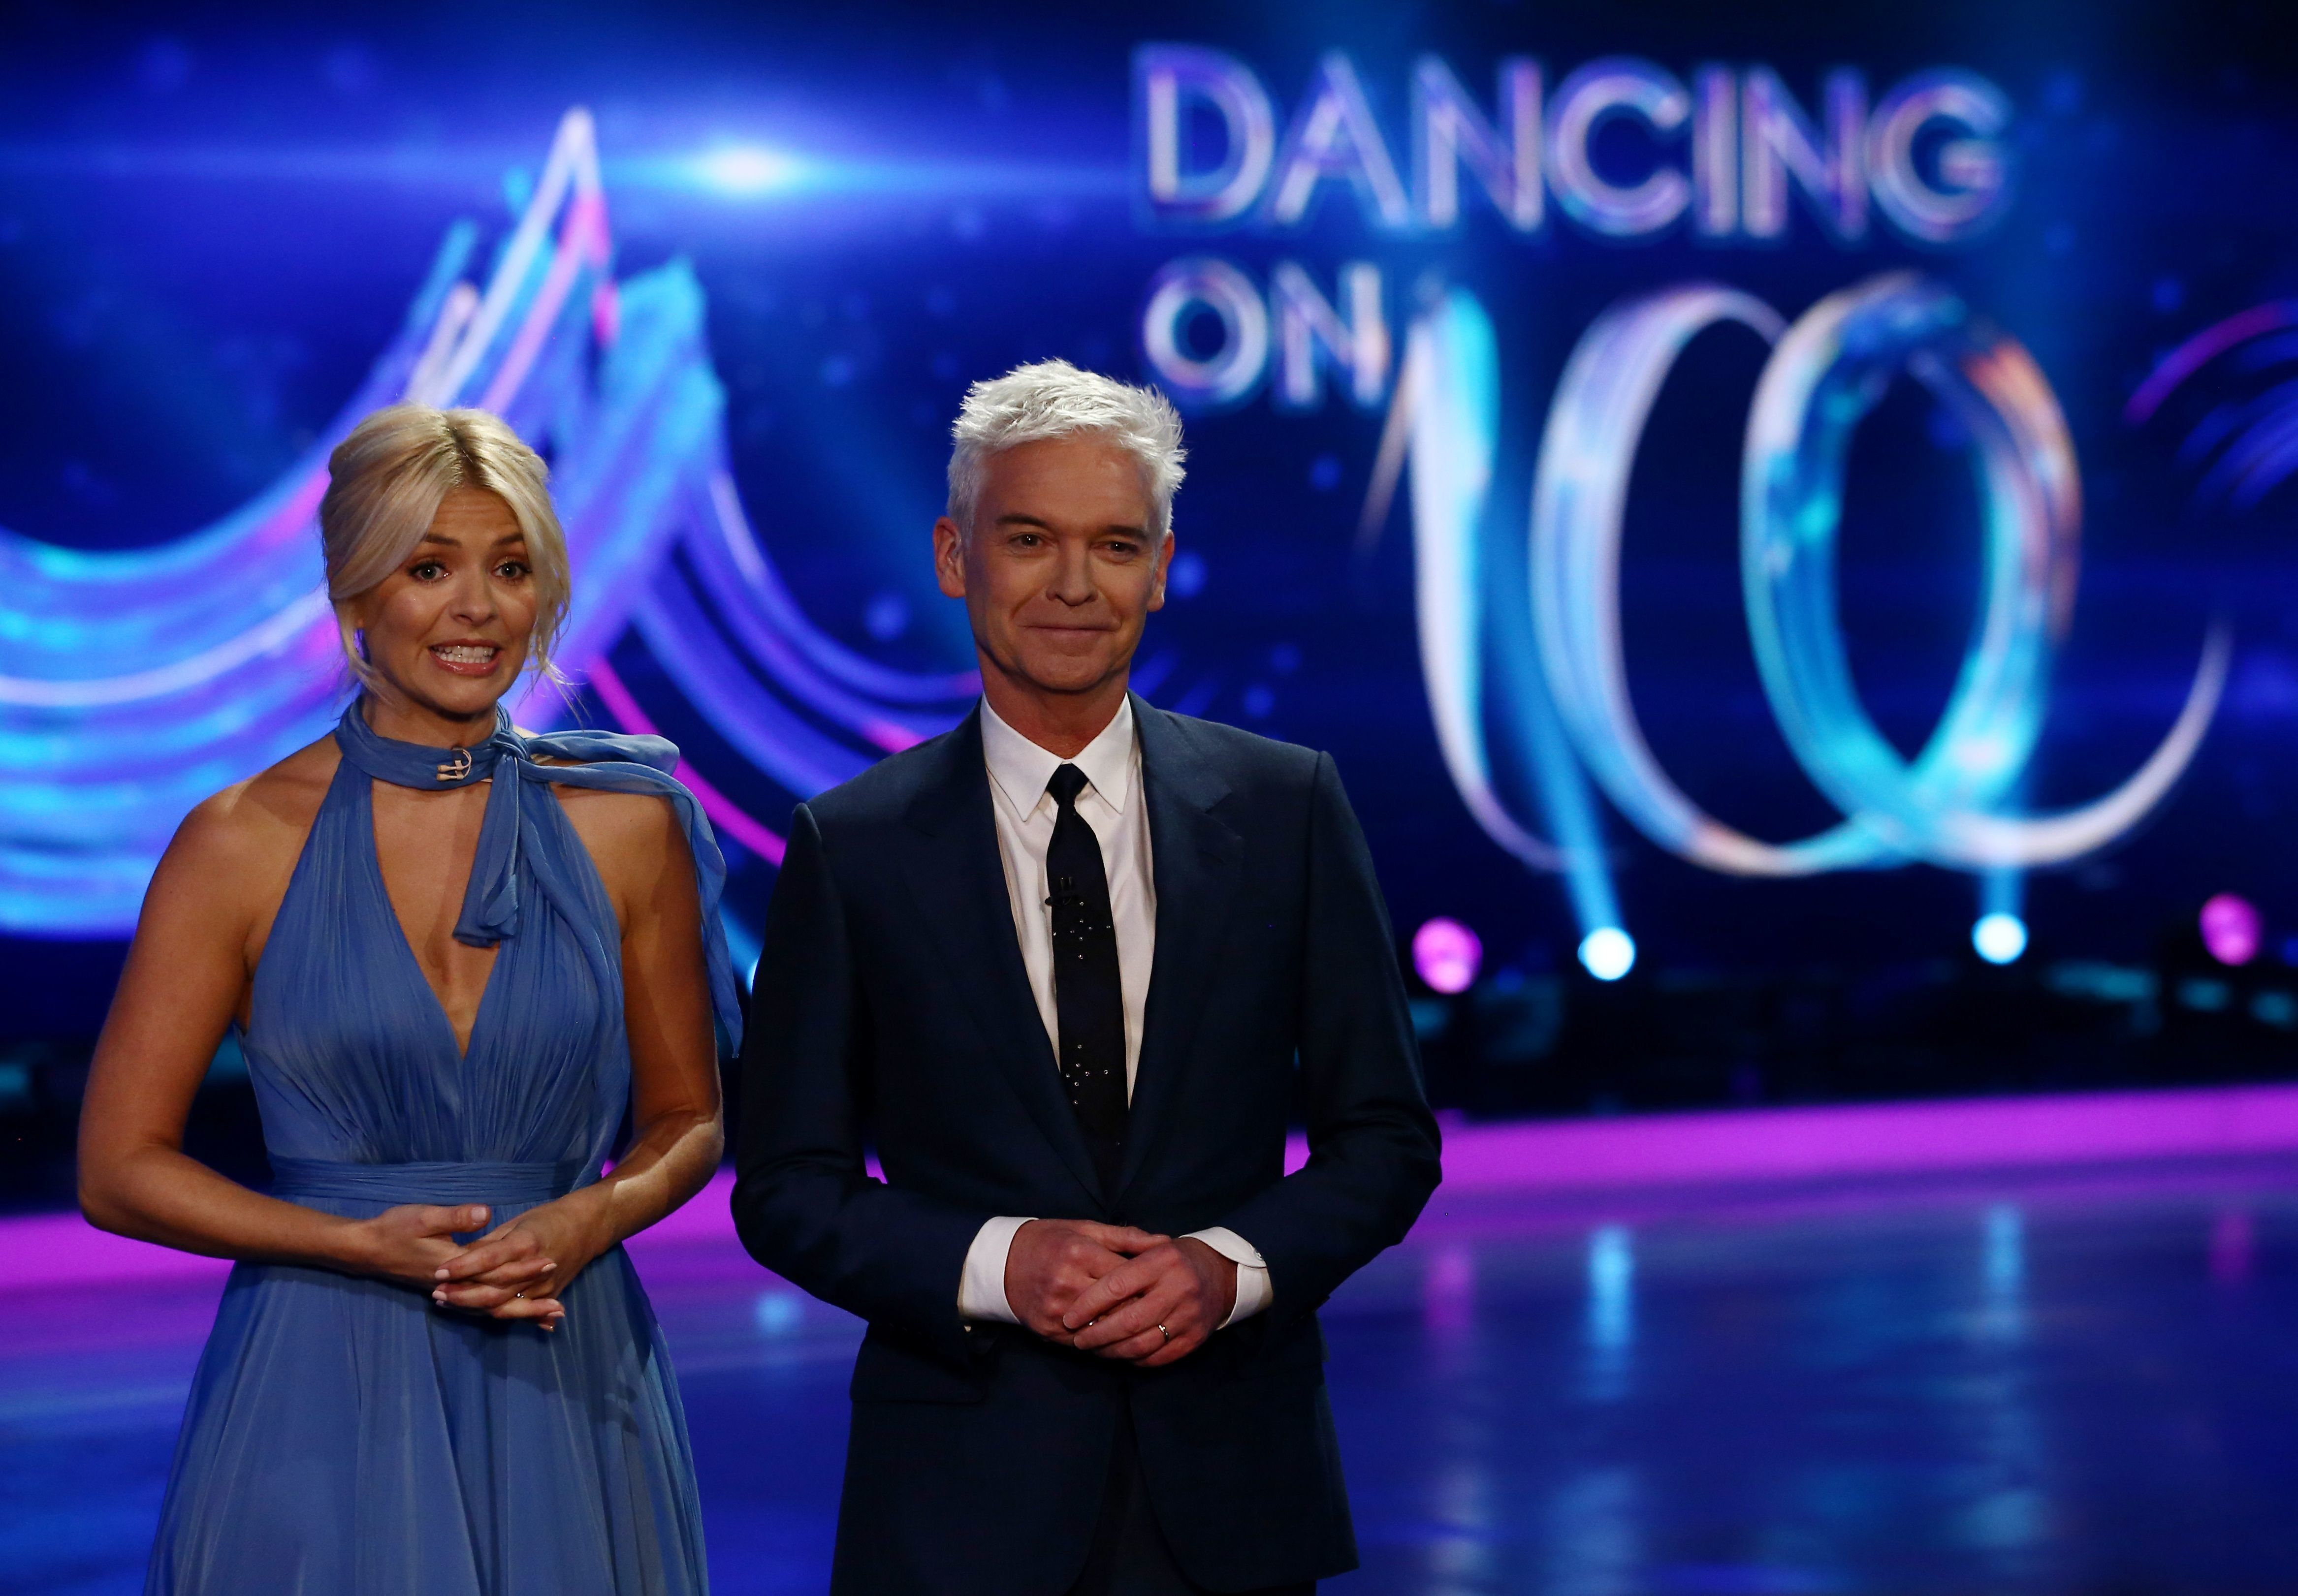 'Dancing On Ice' Confirms New Commentator After Early Exit Of Matt